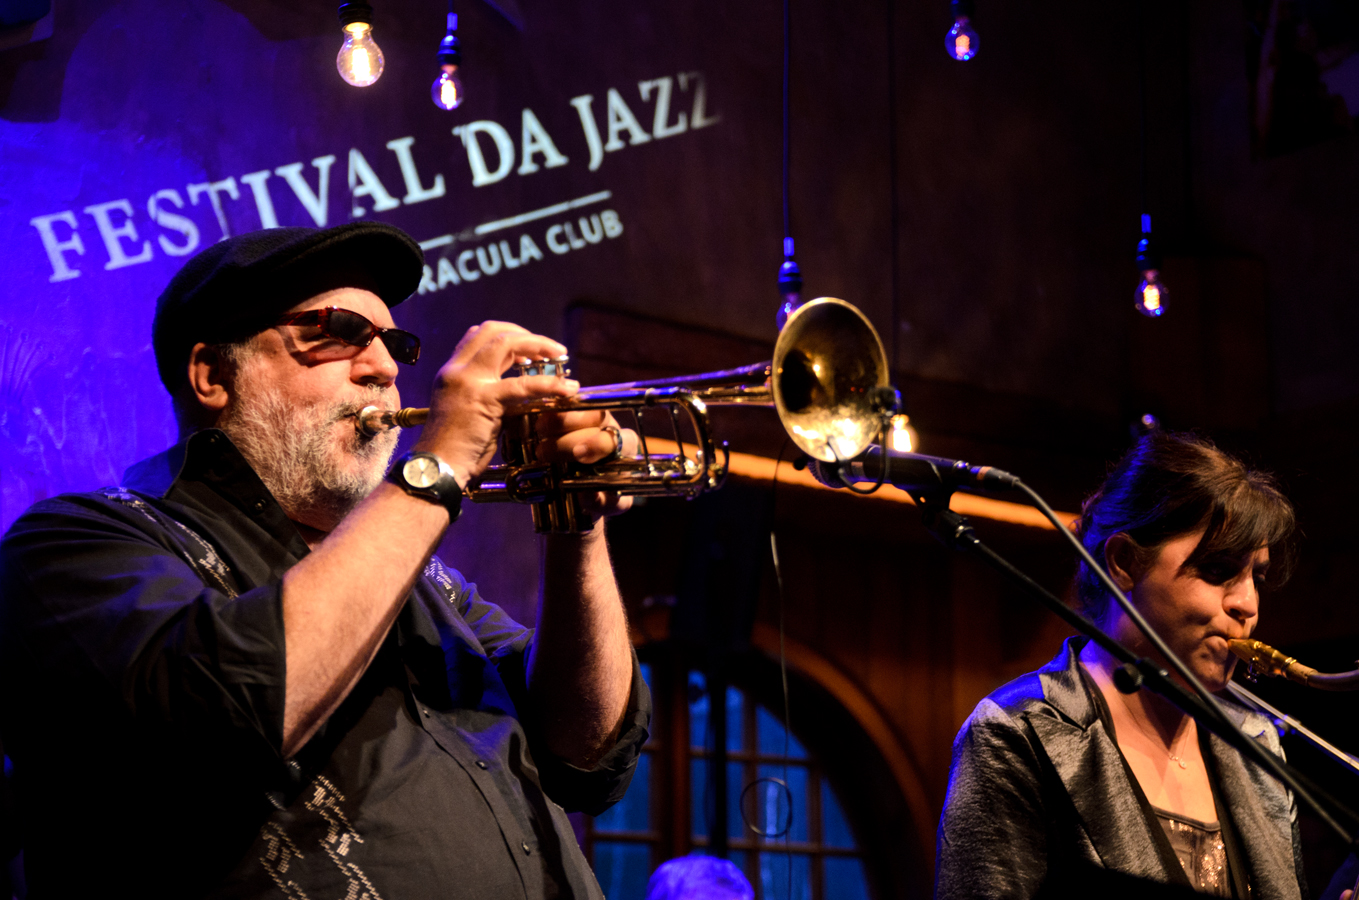 Brecker brothers band reunion at the dracula club